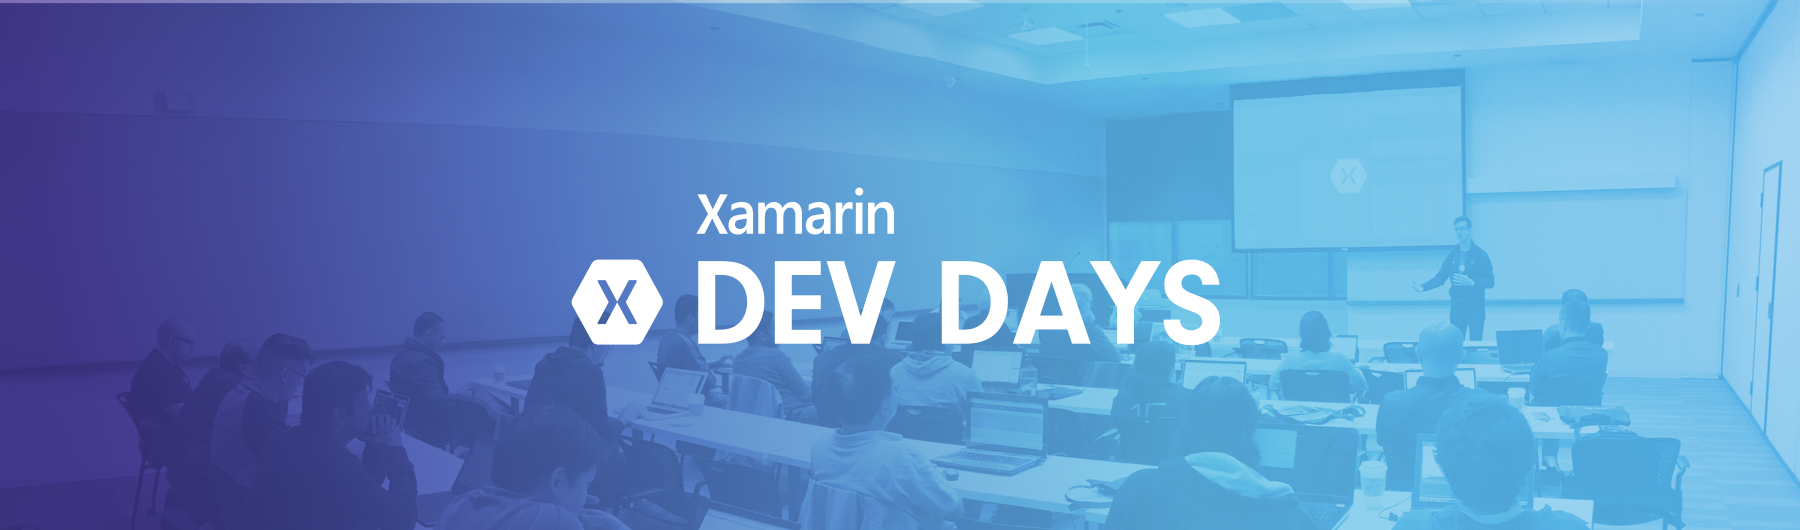 Xamarin Dev Days - Columbus